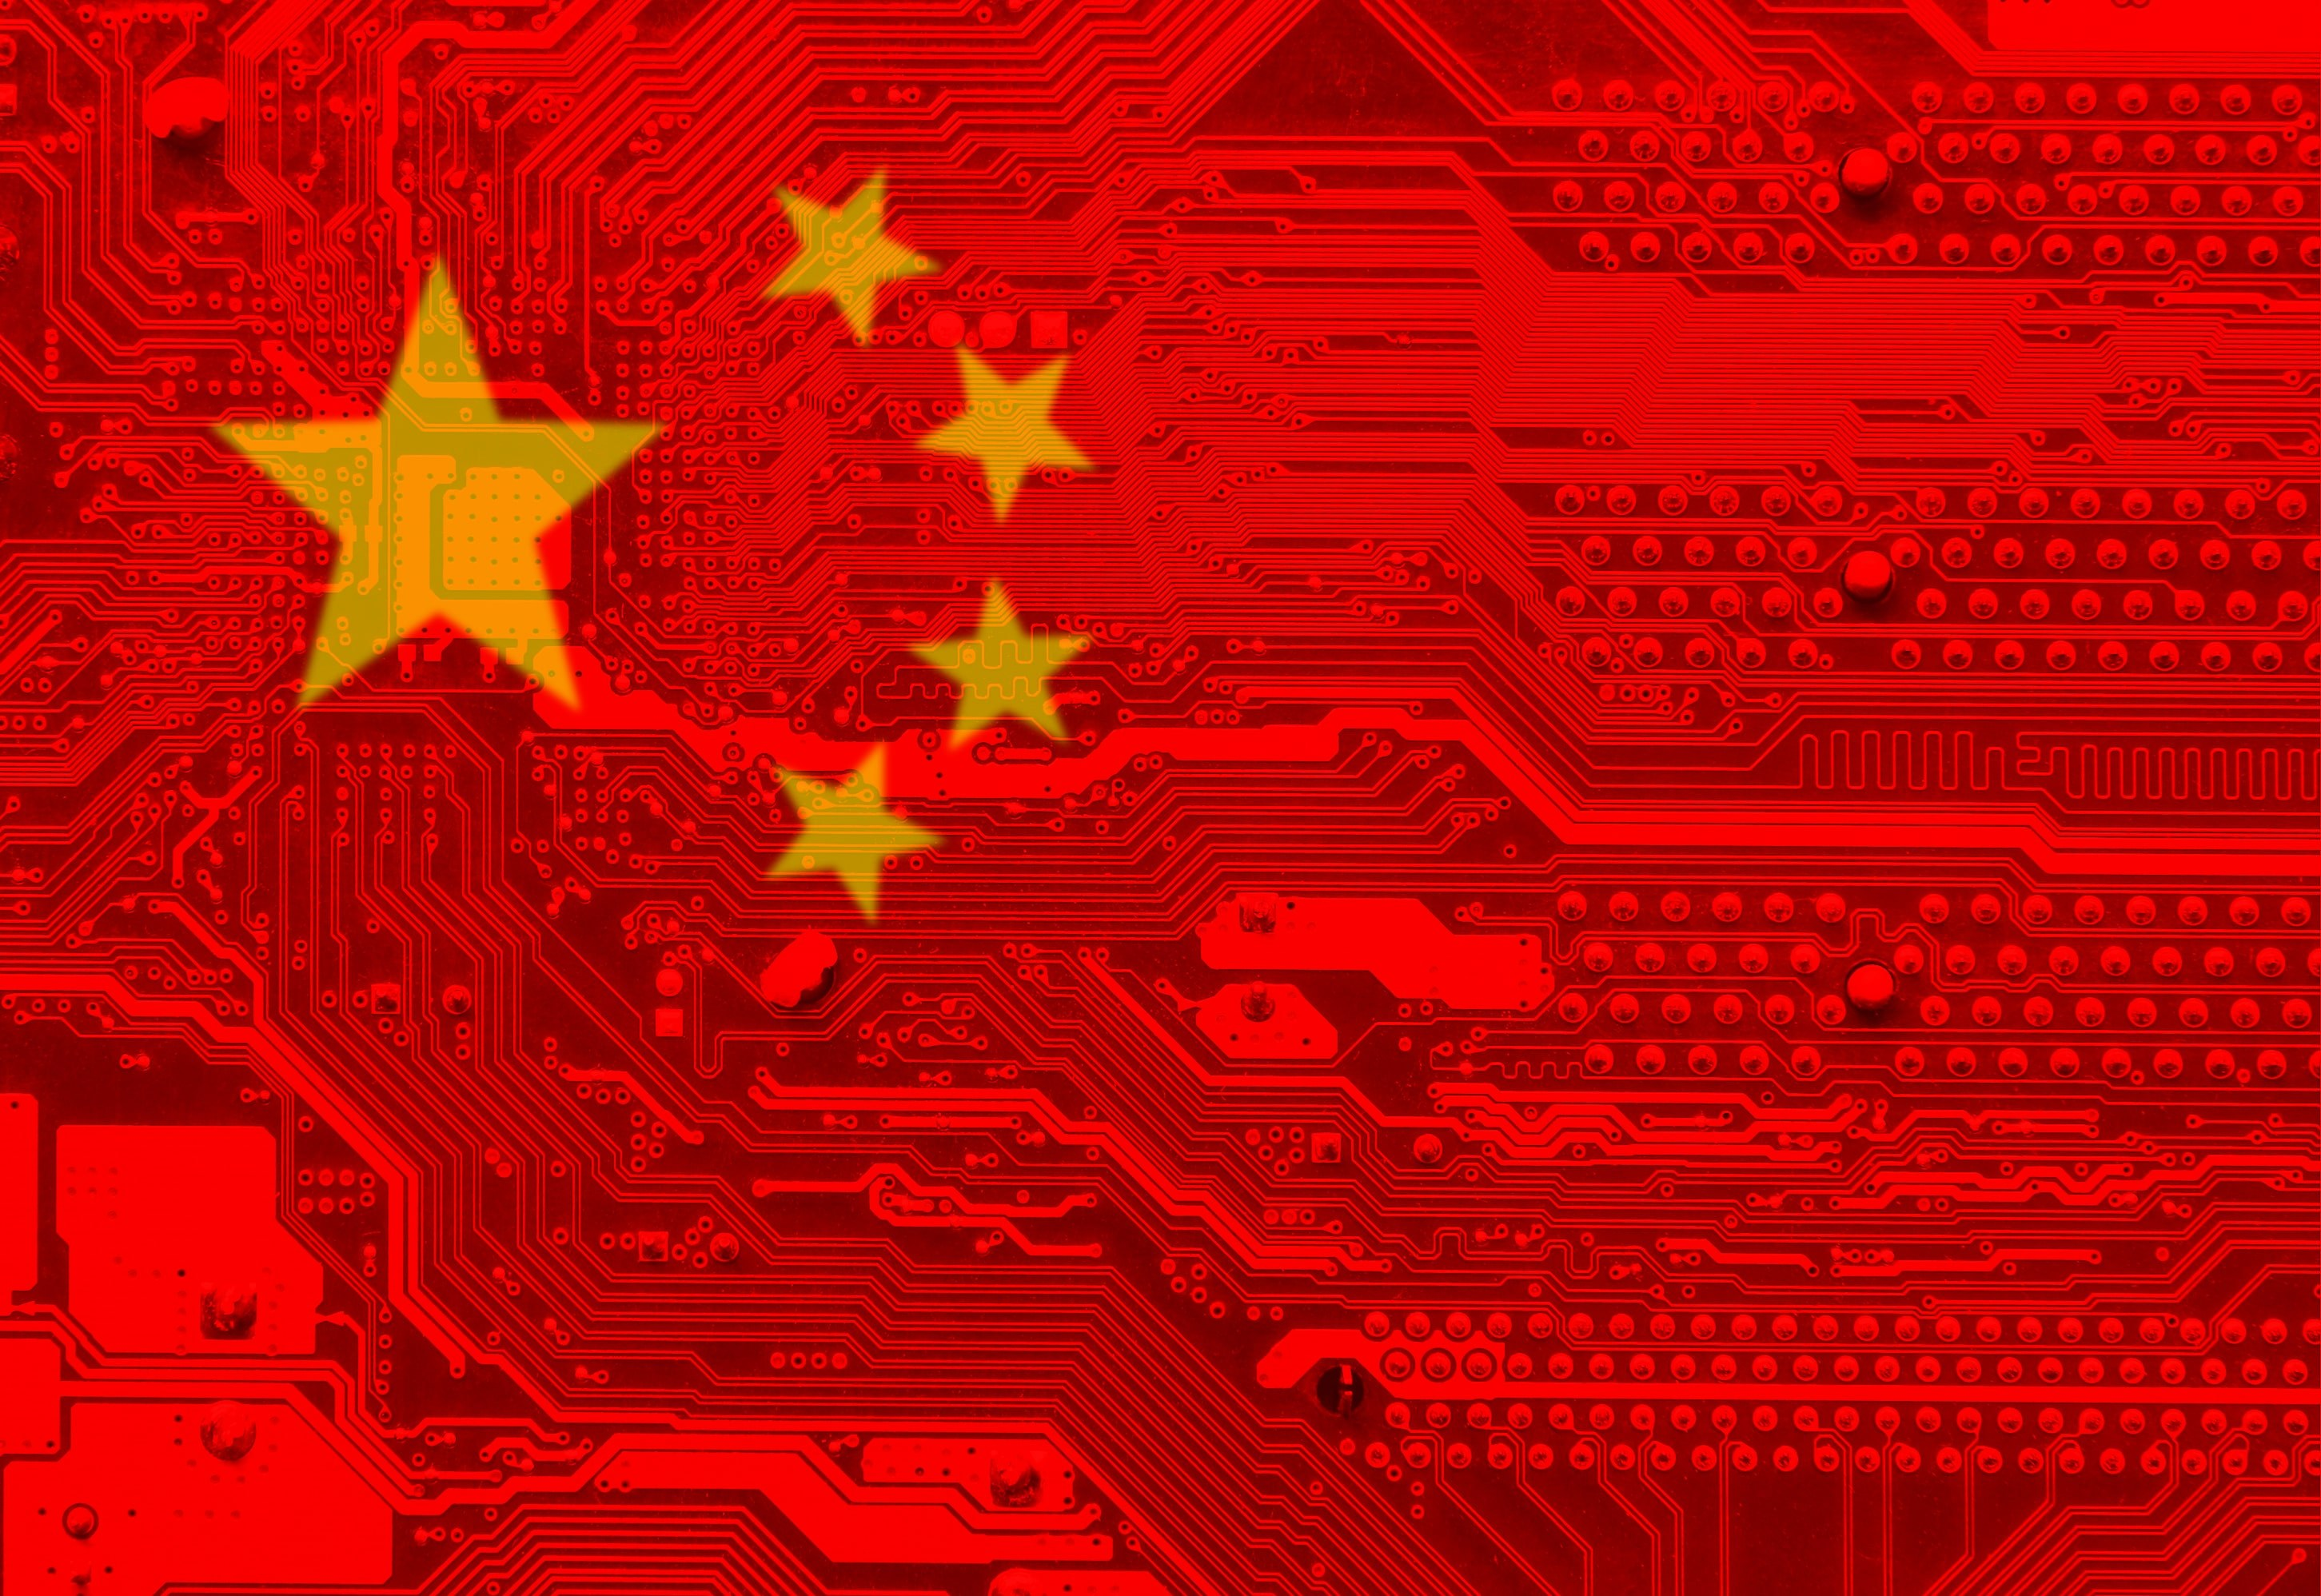 Understanding China's AI Strategy | Center for a New